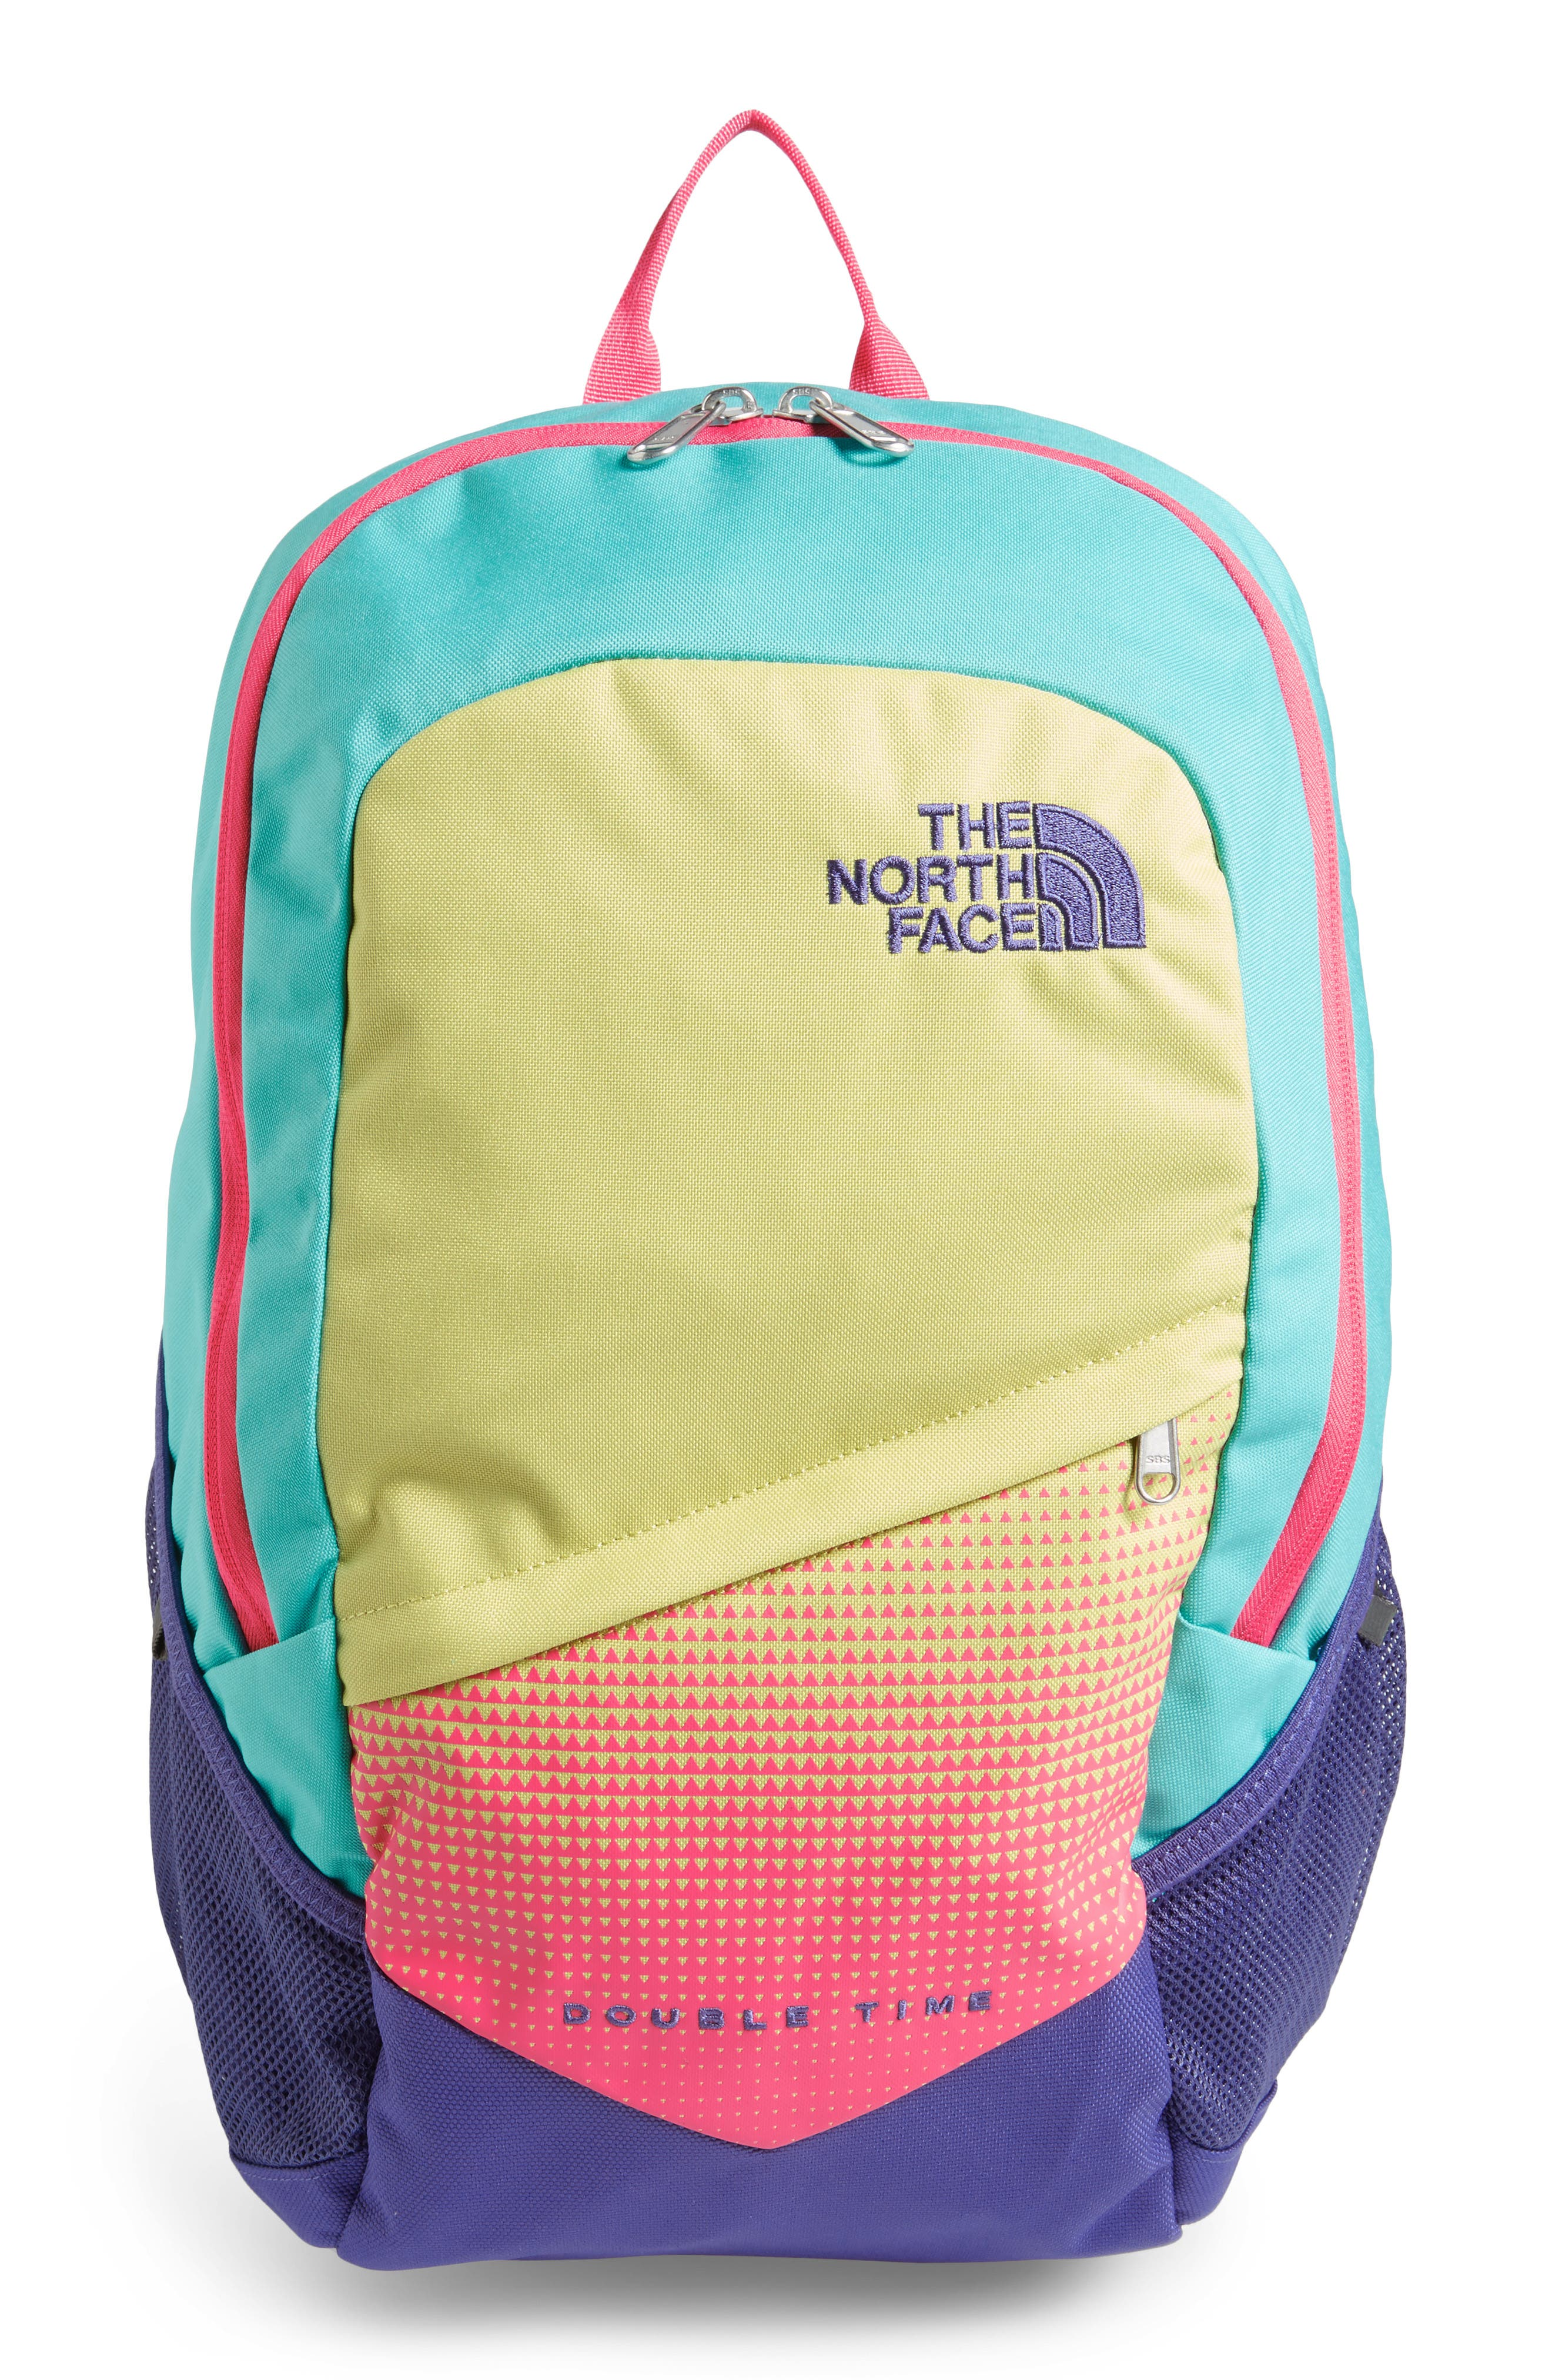 Alternate Image 1 Selected - The North Face 'Double Time' Backpack (Kids)